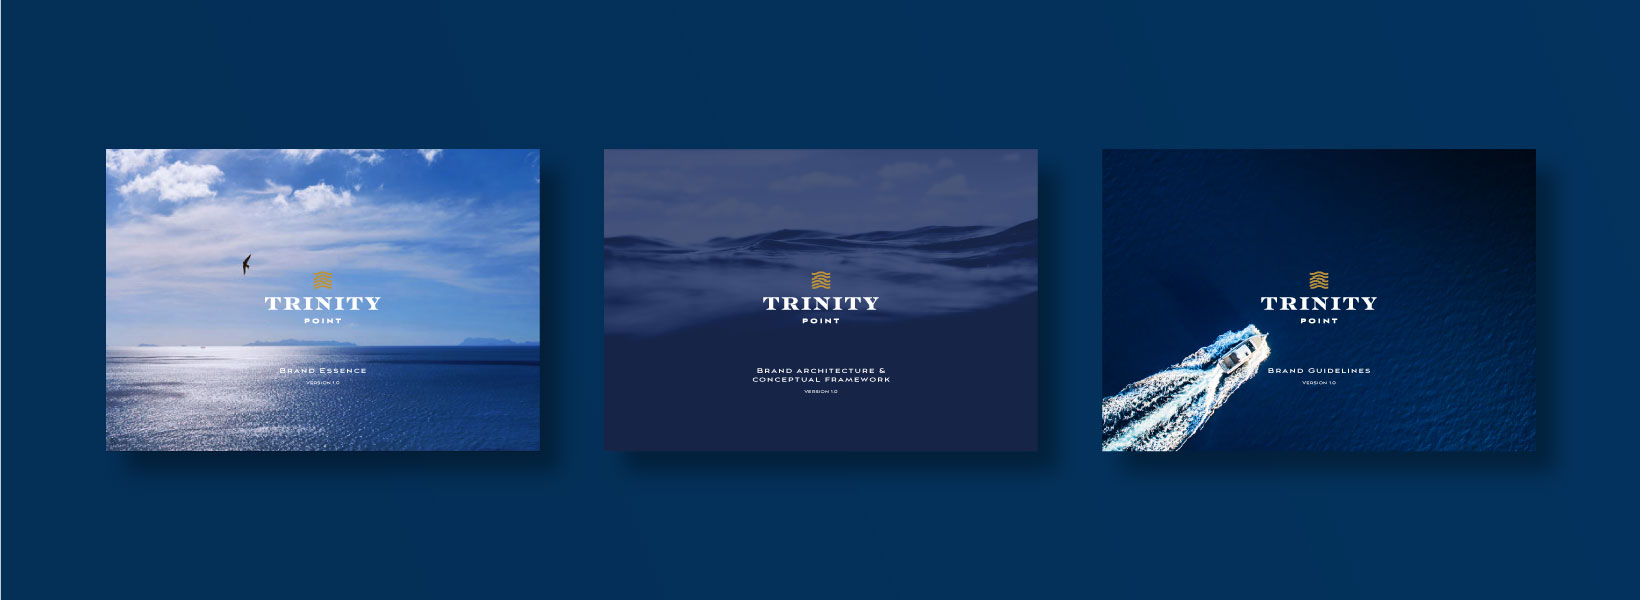 Trinity Point – 'Above & Beyond'